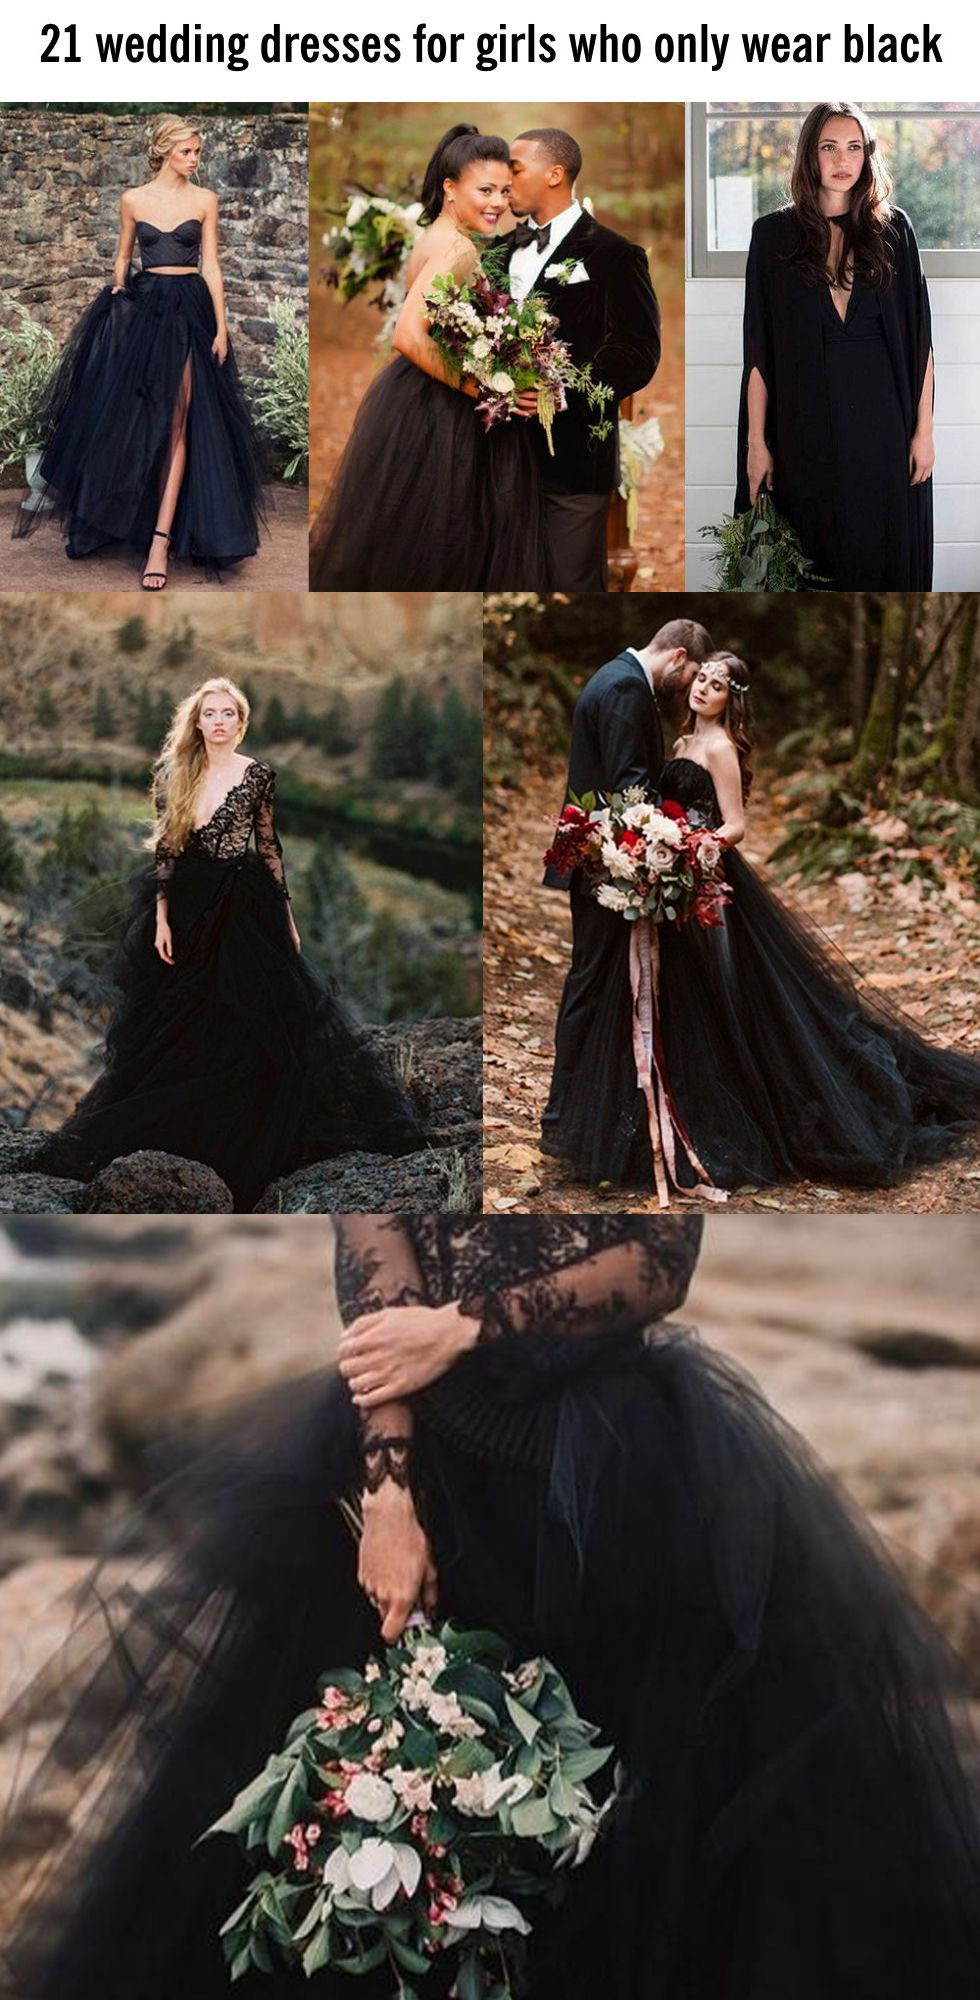 21 Wedding Dresses For Girls Who Only Wear Black Wedding Dresses